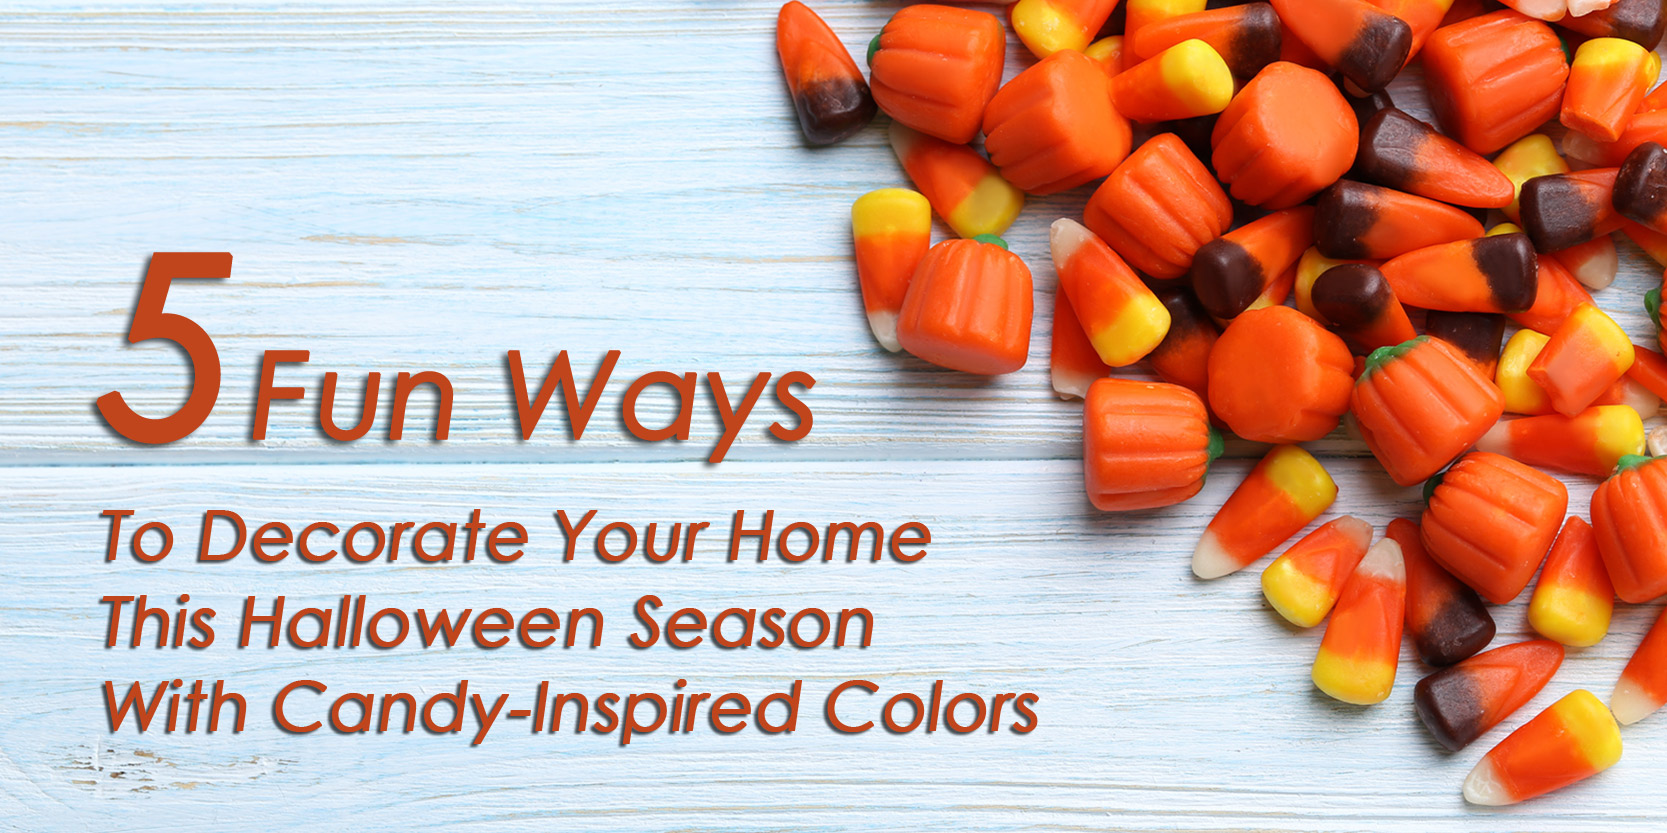 Blog 5 fun ways to decorate your home this halloween for Ways to decorate your house for halloween